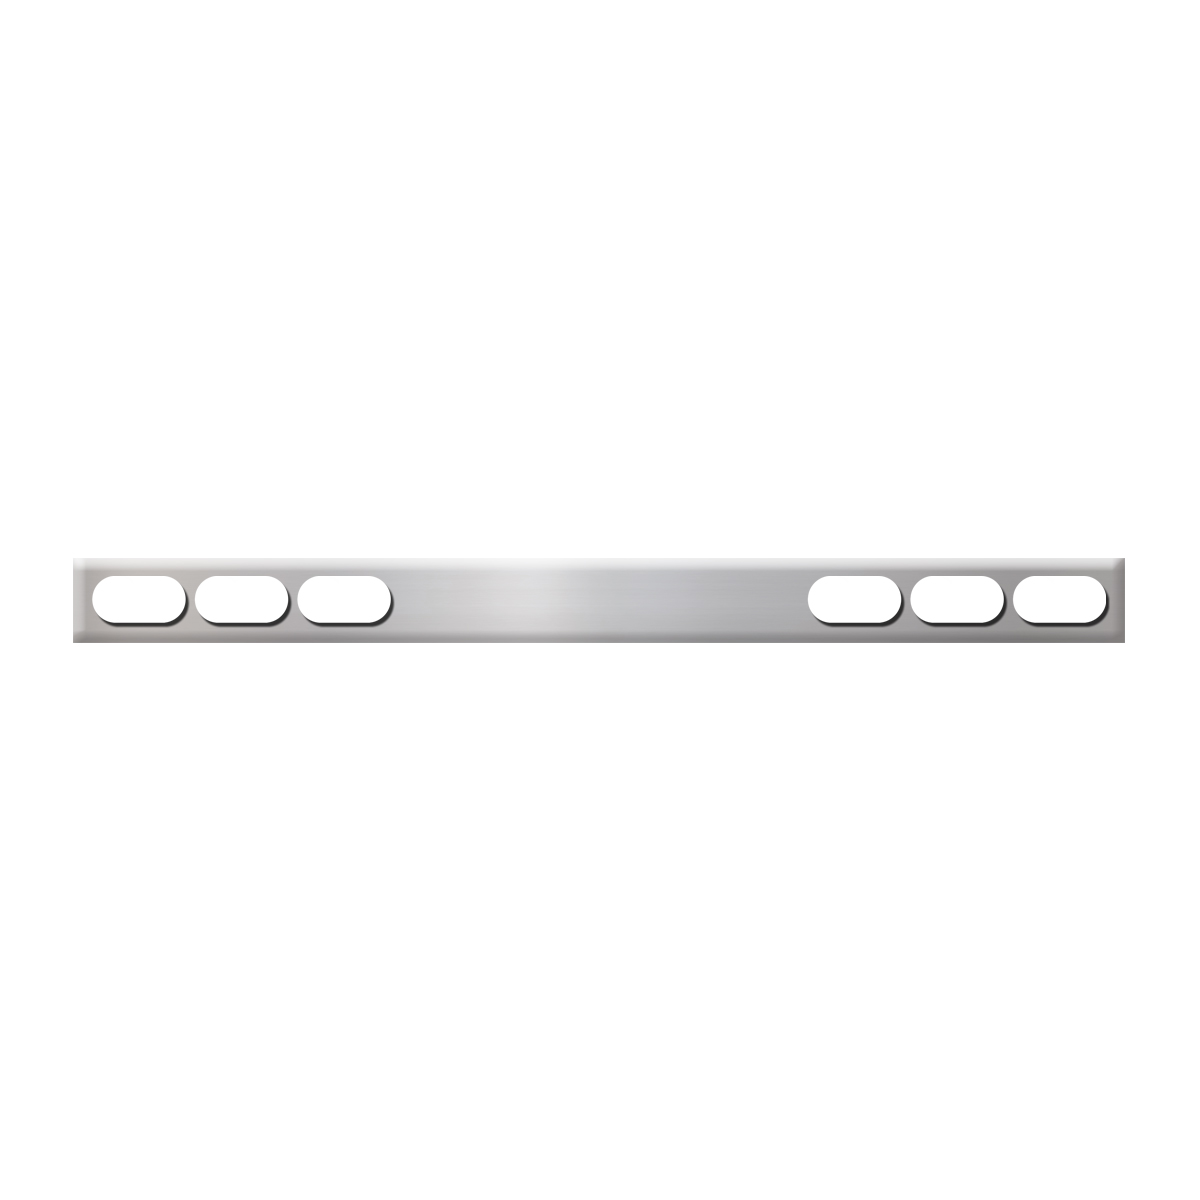 #80135 Chrome Plated Steel One Piece Rear Light Bars Only